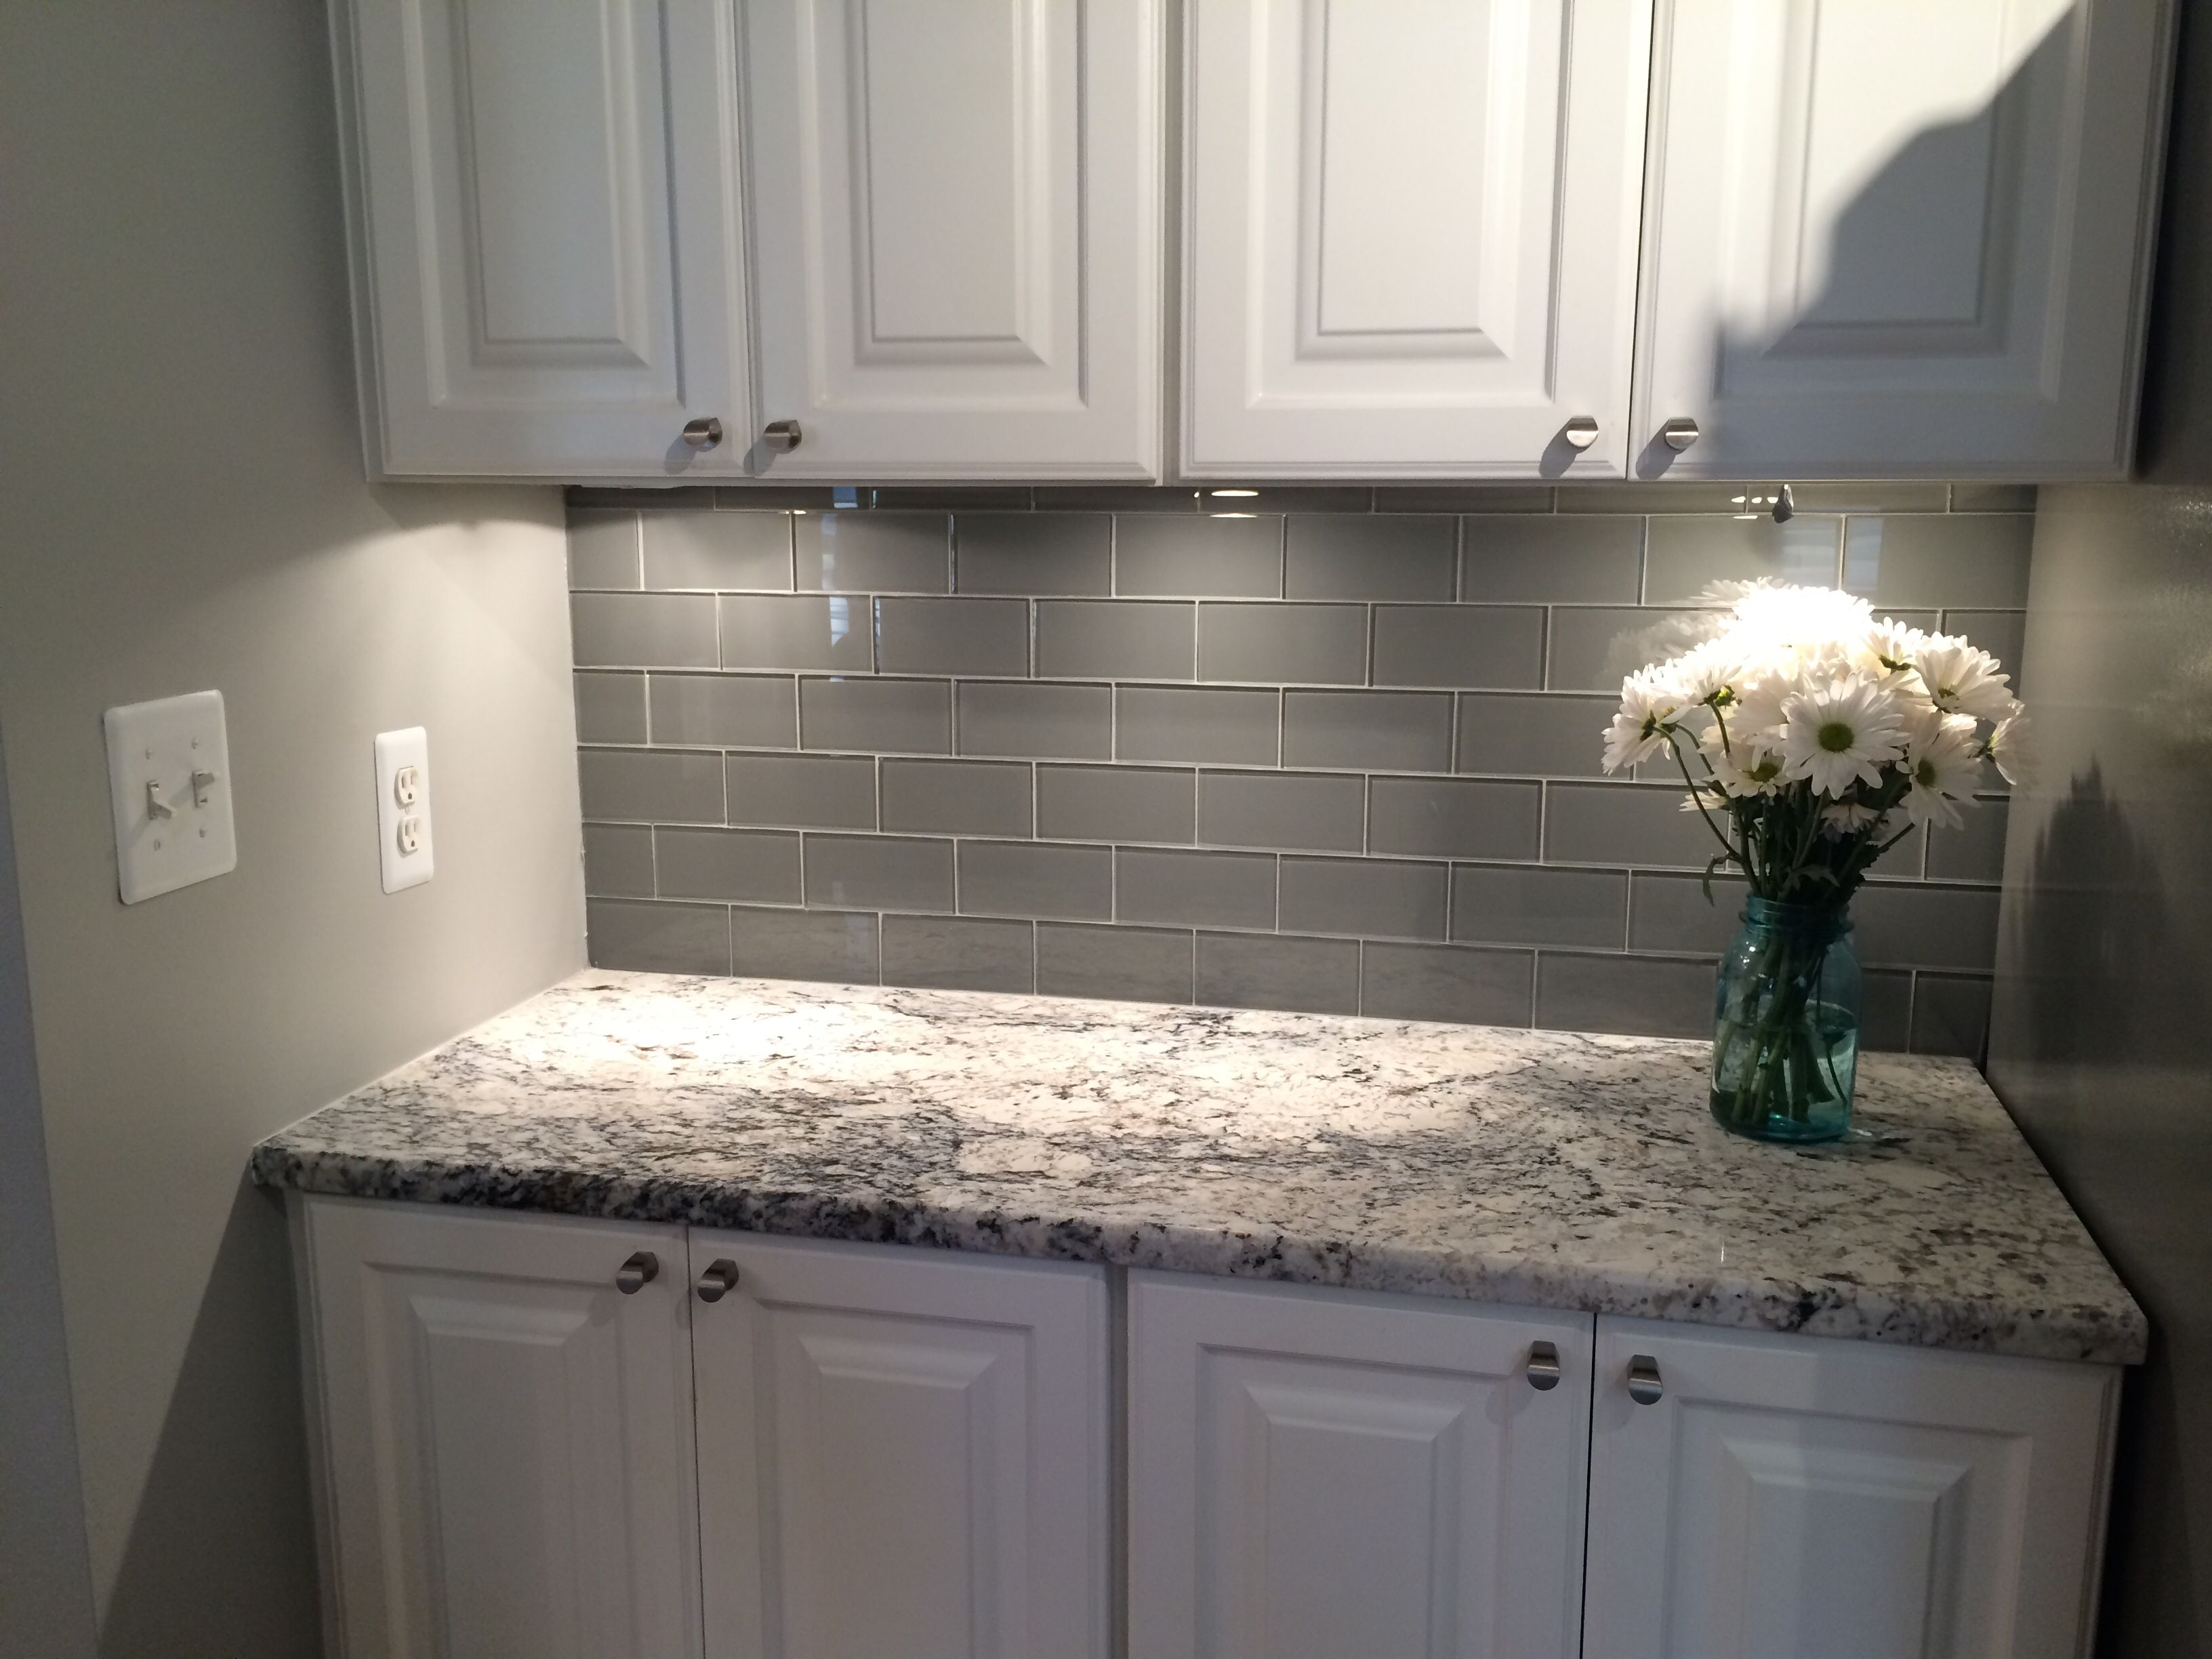 Kitchen Backsplash Ideas With Granite Countertops Part - 30: Granite: Delicatus White, Paint: Sherwin Williams March Wind, Grey Subway  Tile Backsplash With Grey Grout